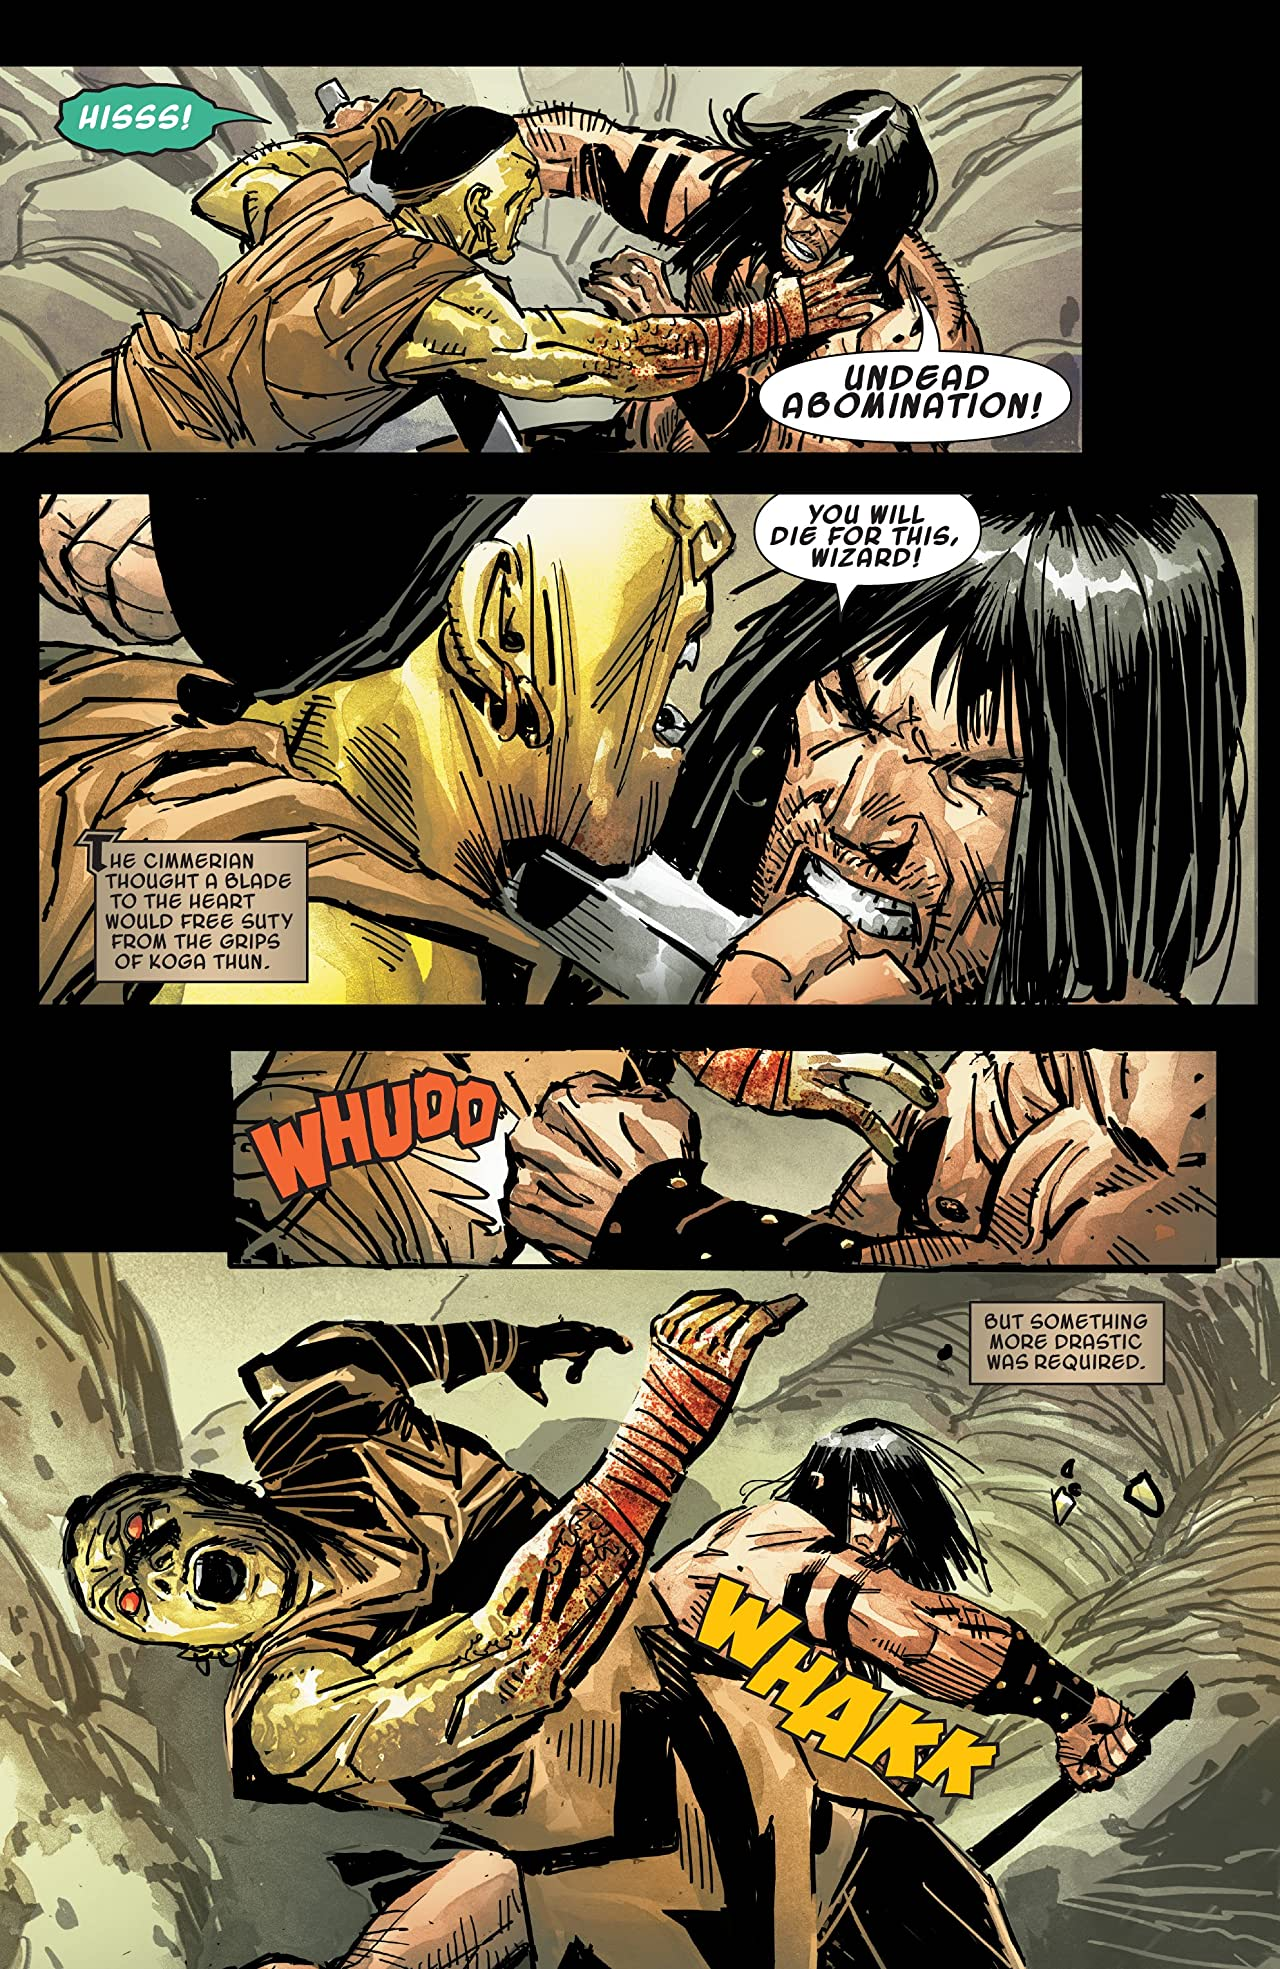 Savage Sword Of Conan (2019-) #5